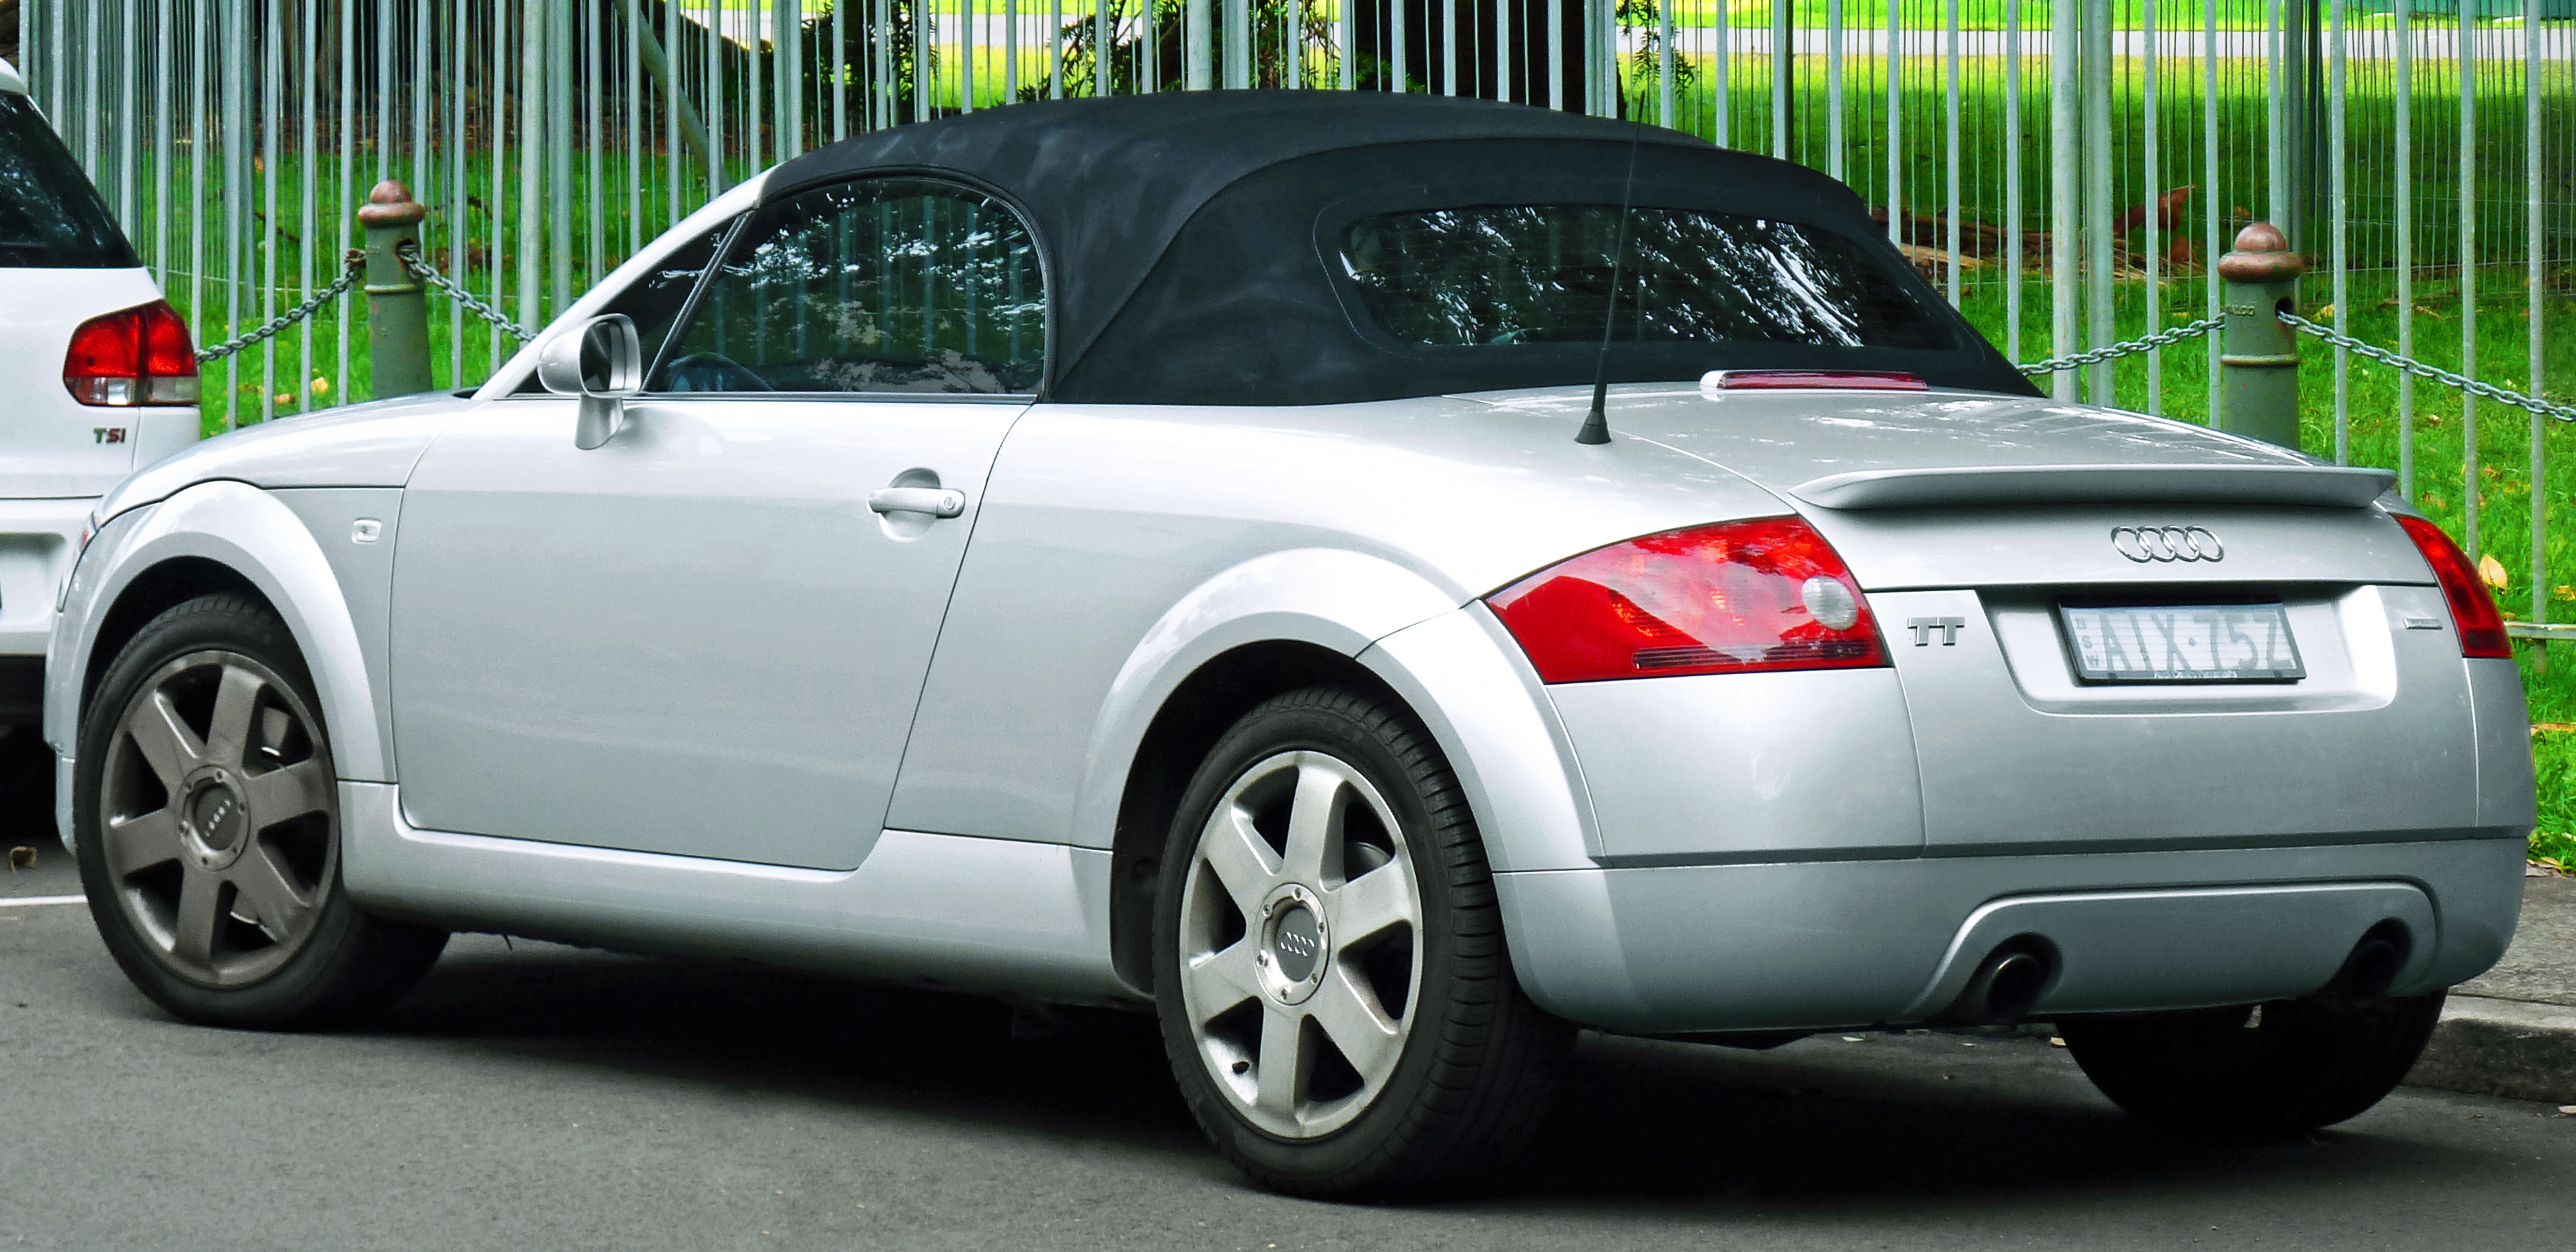 audi tt roadster (pq35,36) 2010 wallpaper #2